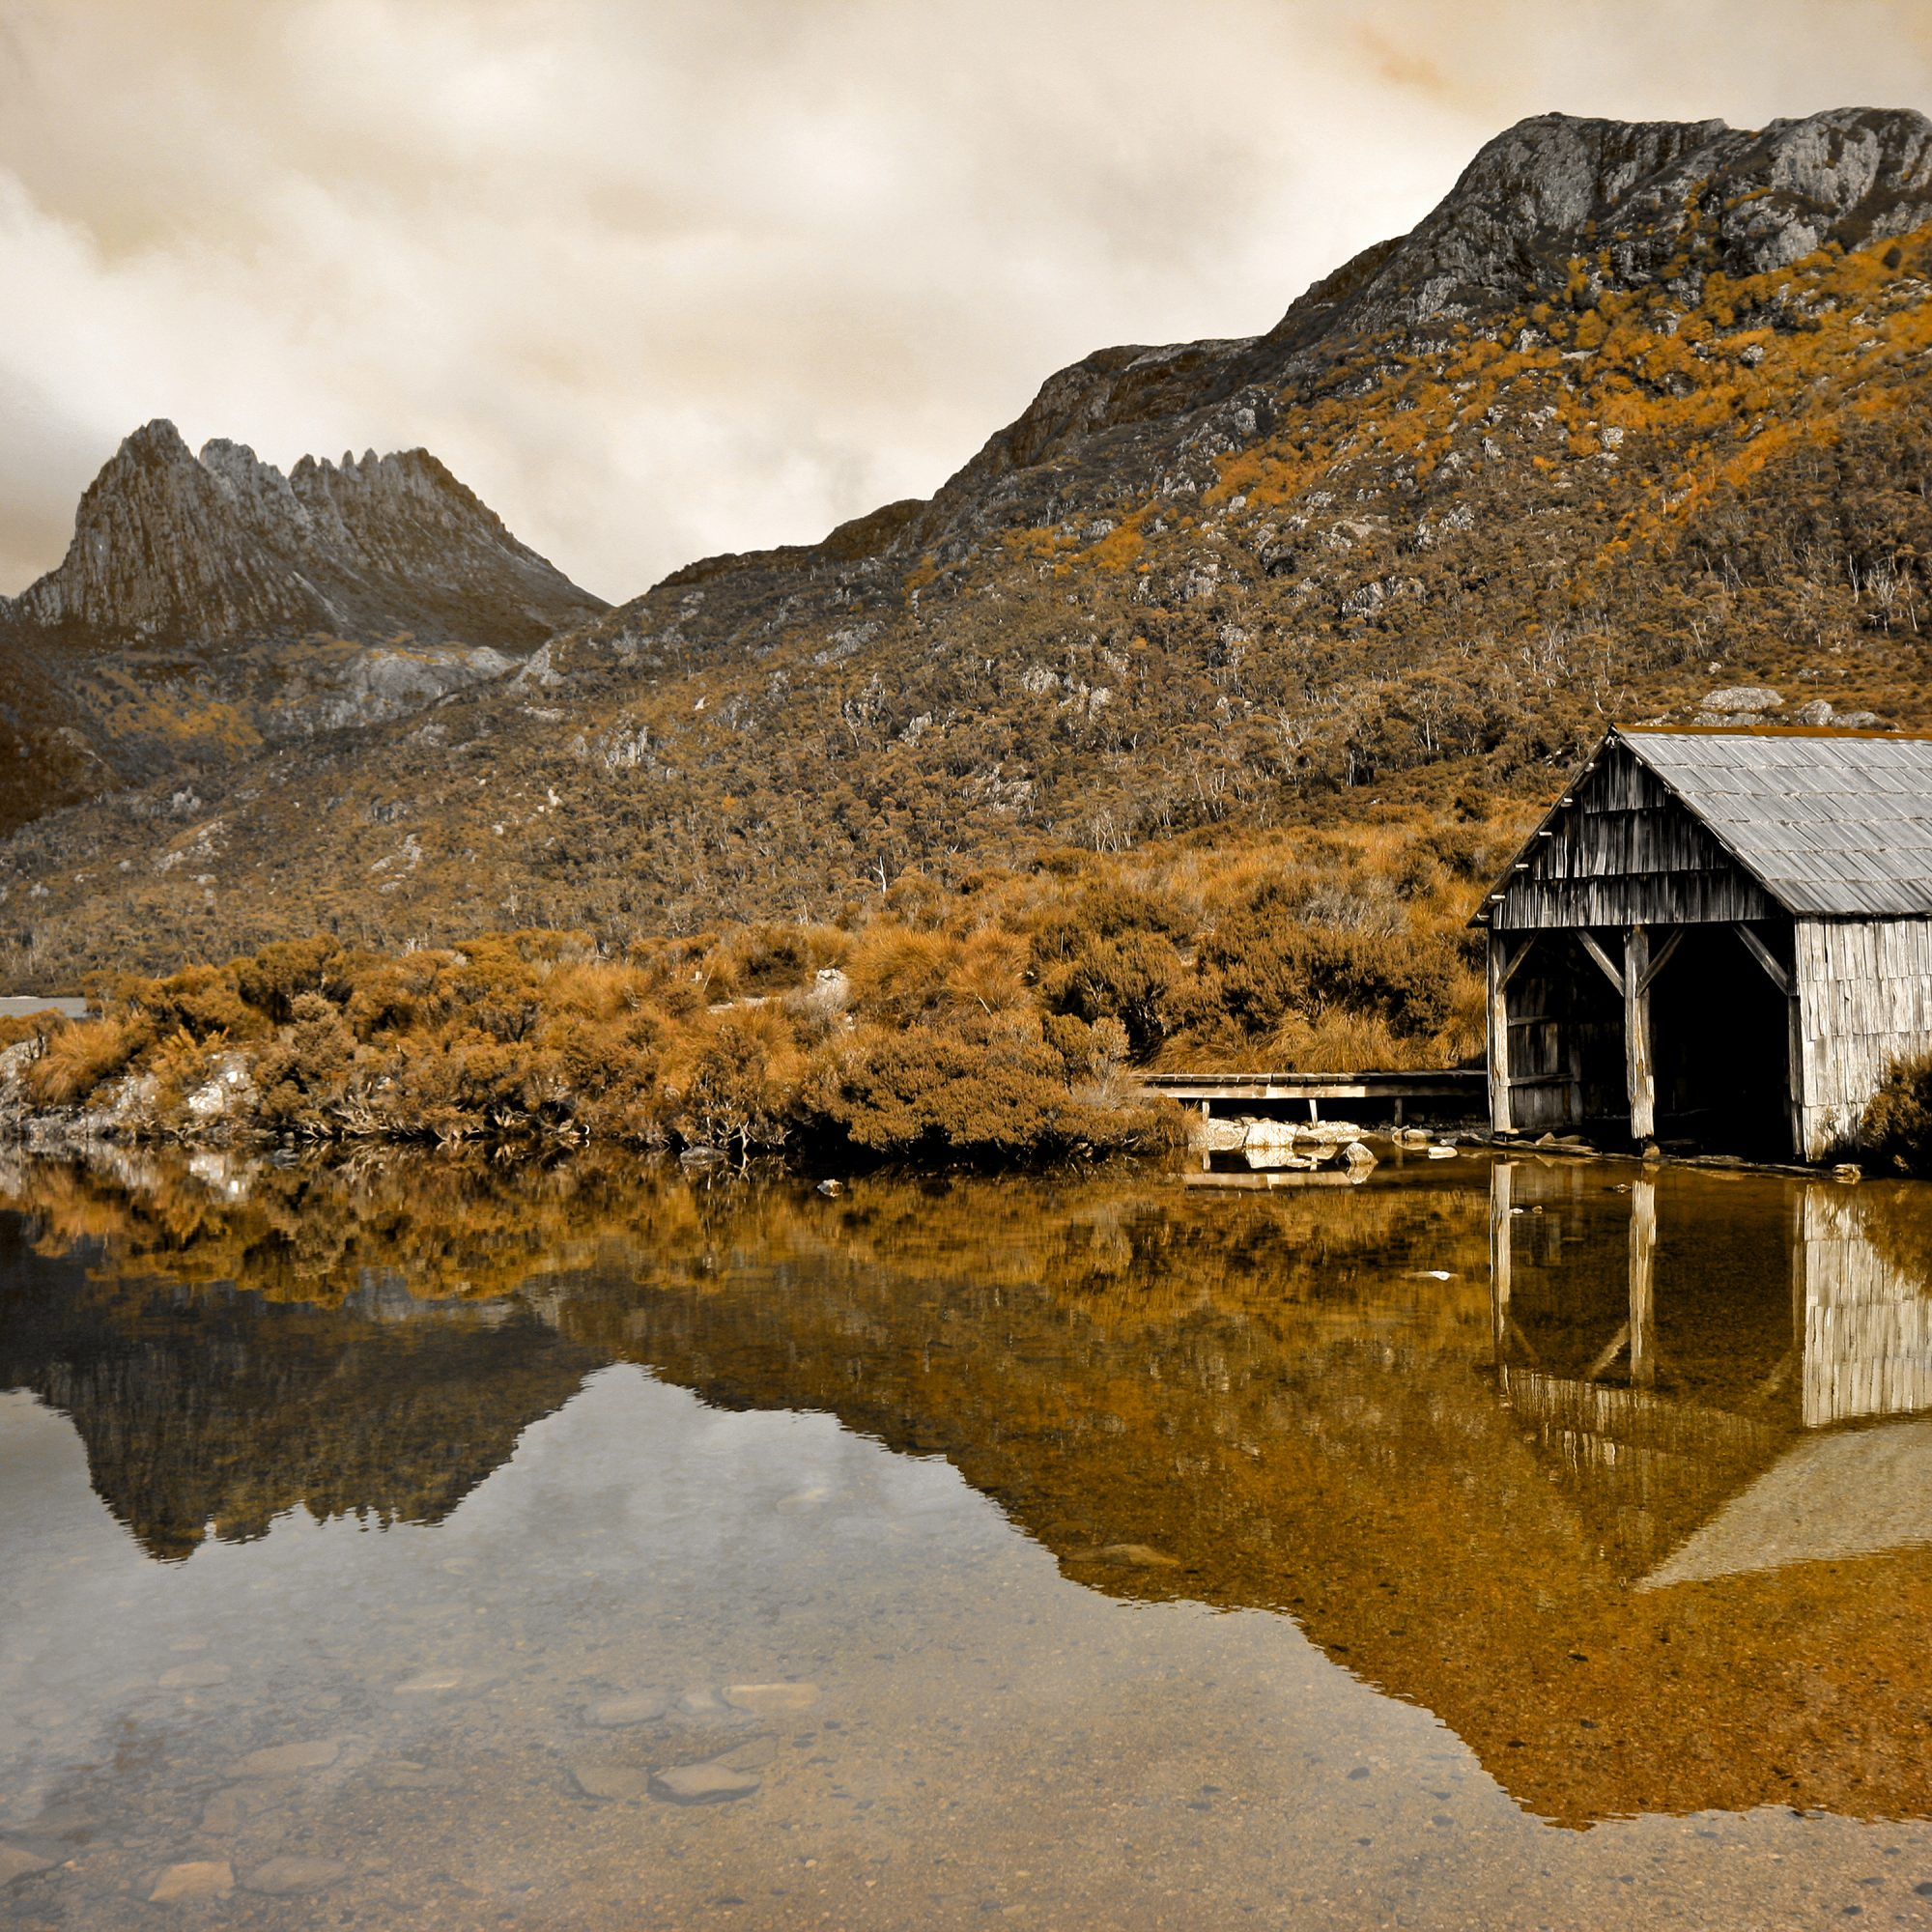 pcf1069sq-cradle-mountain-etsy